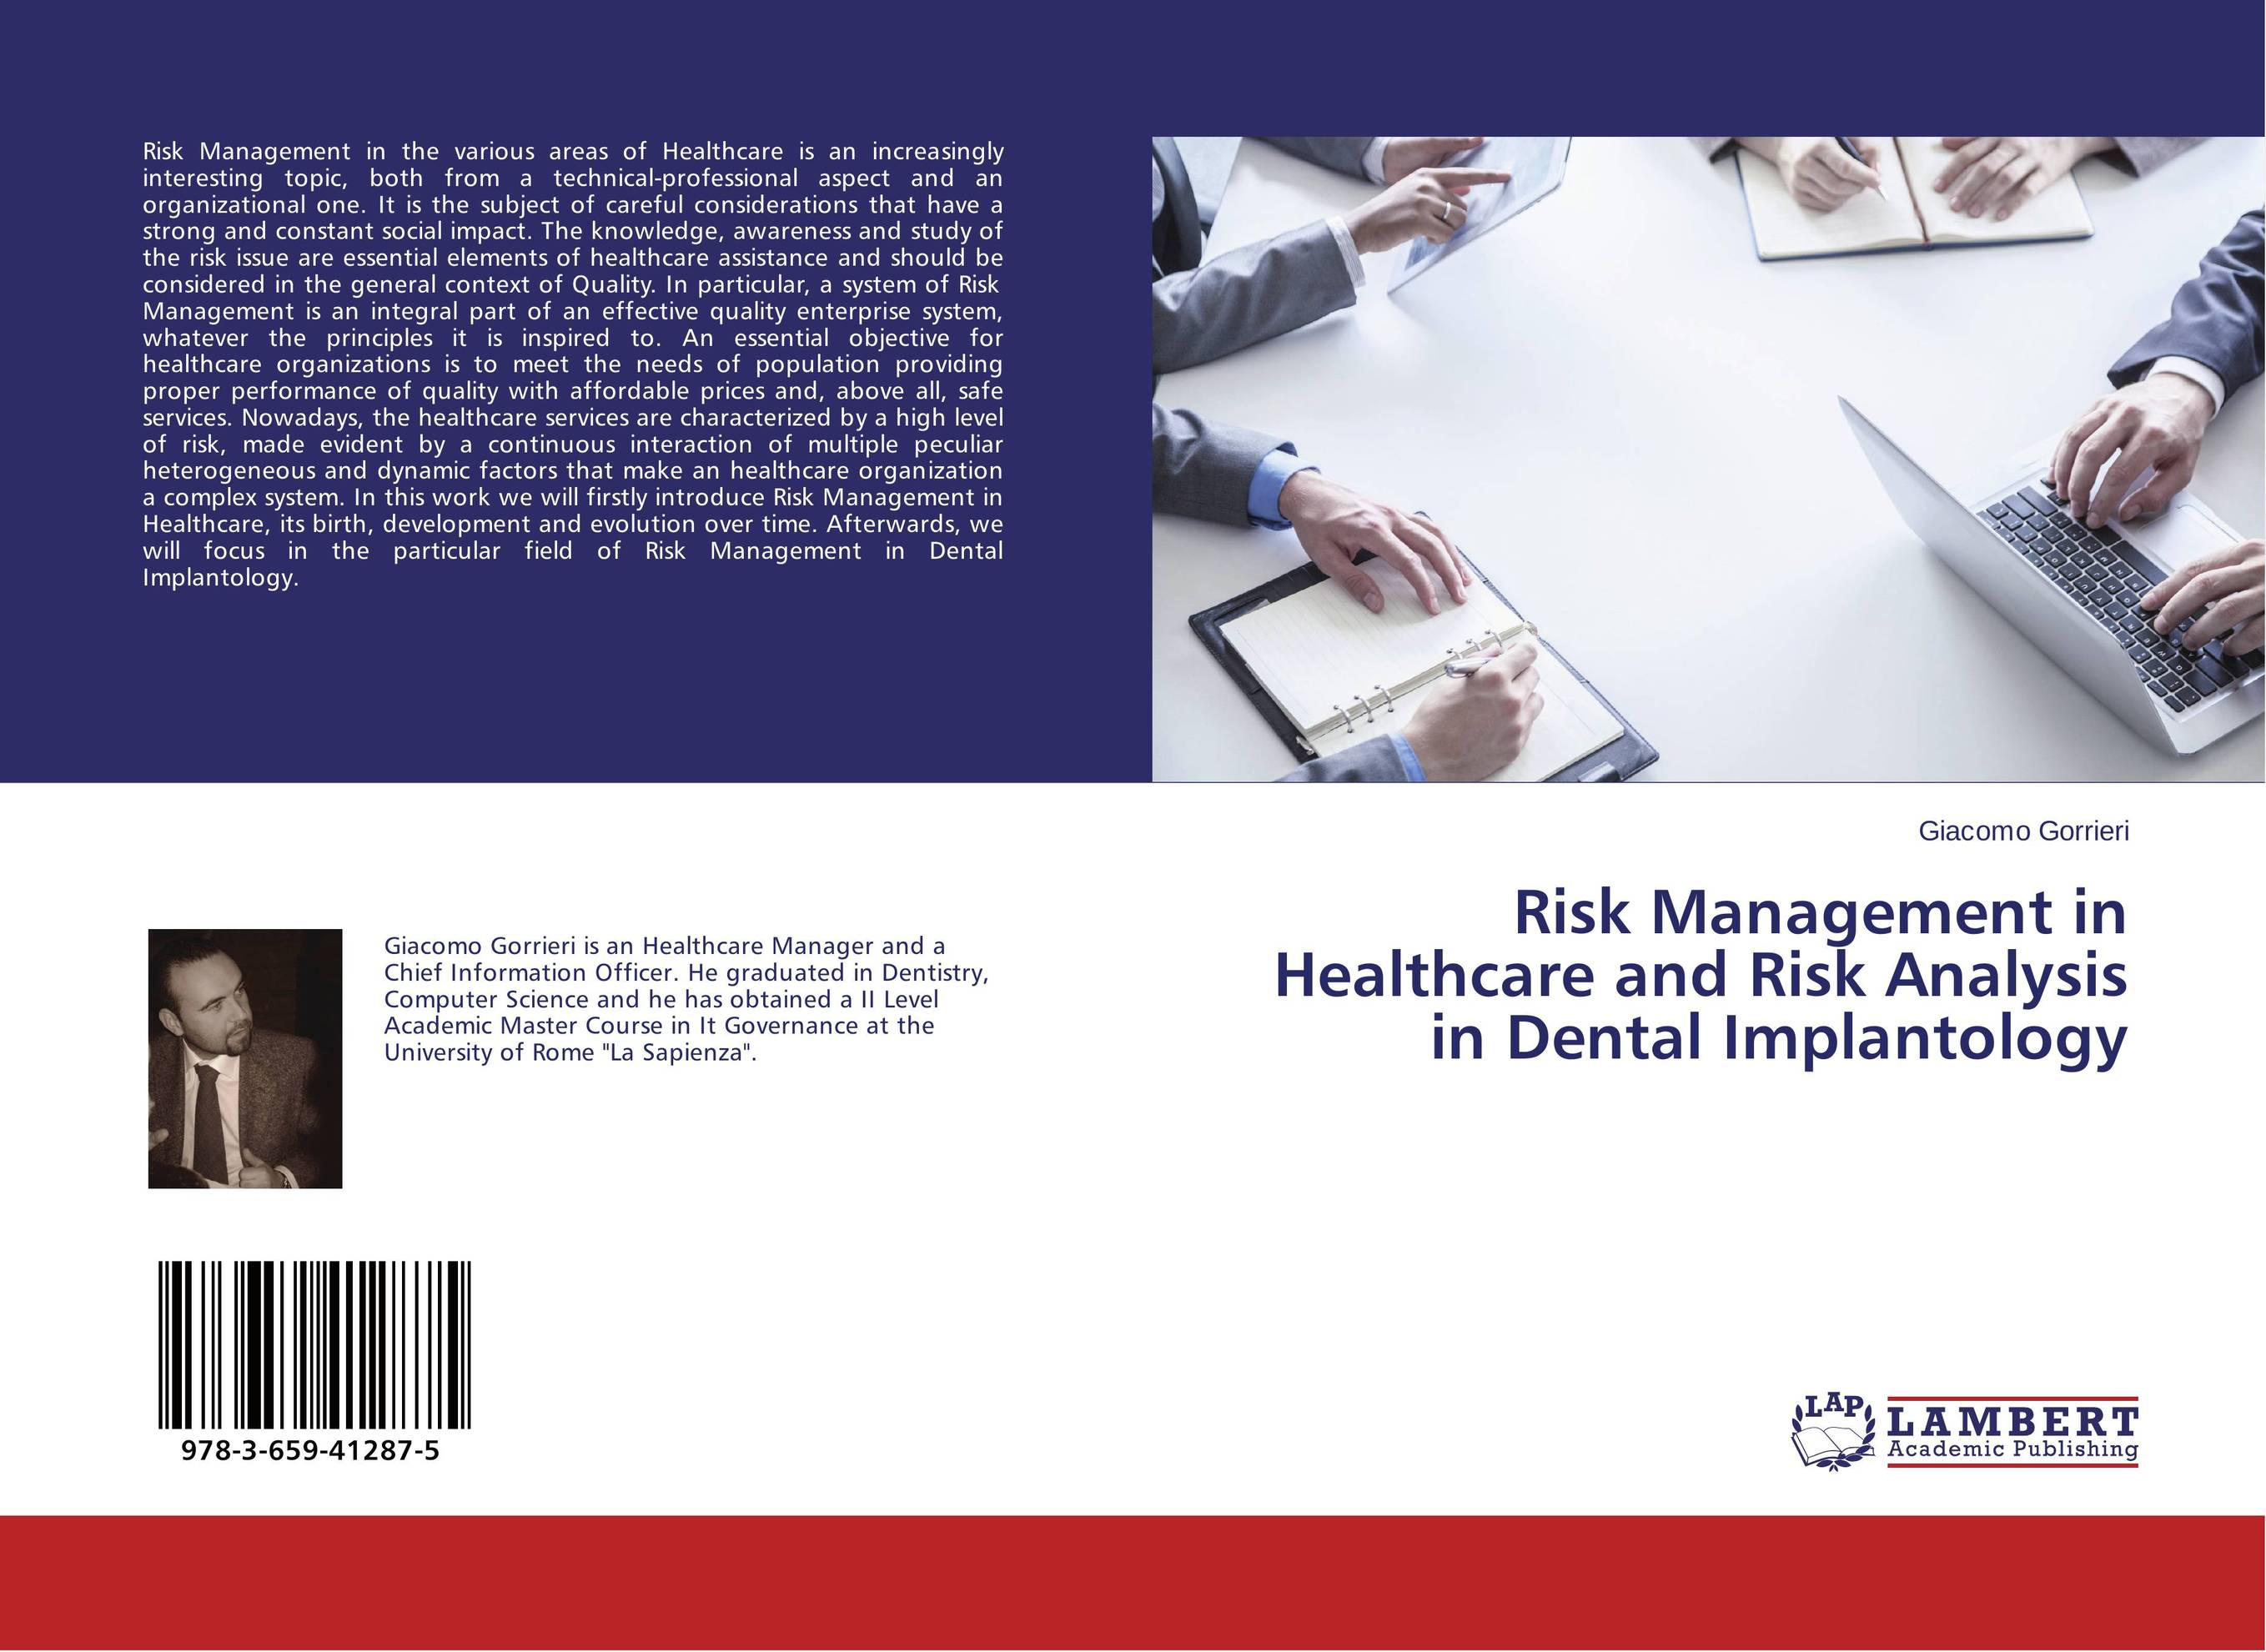 Risk Management in Healthcare and Risk Analysis in Dental Implantology sim segal corporate value of enterprise risk management the next step in business management